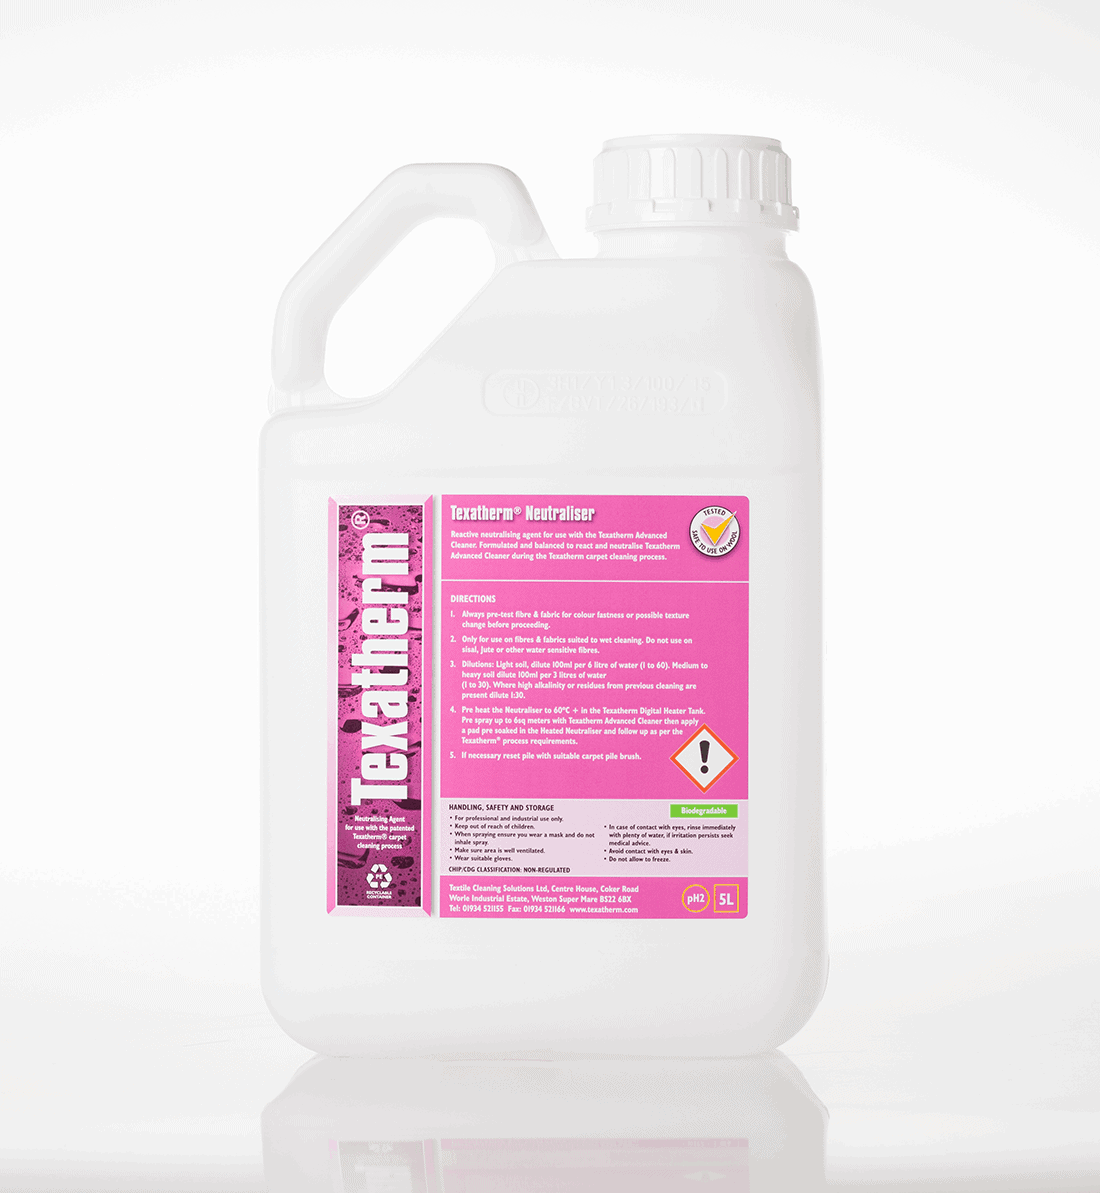 Professional carpet cleaning chemical neutraliser